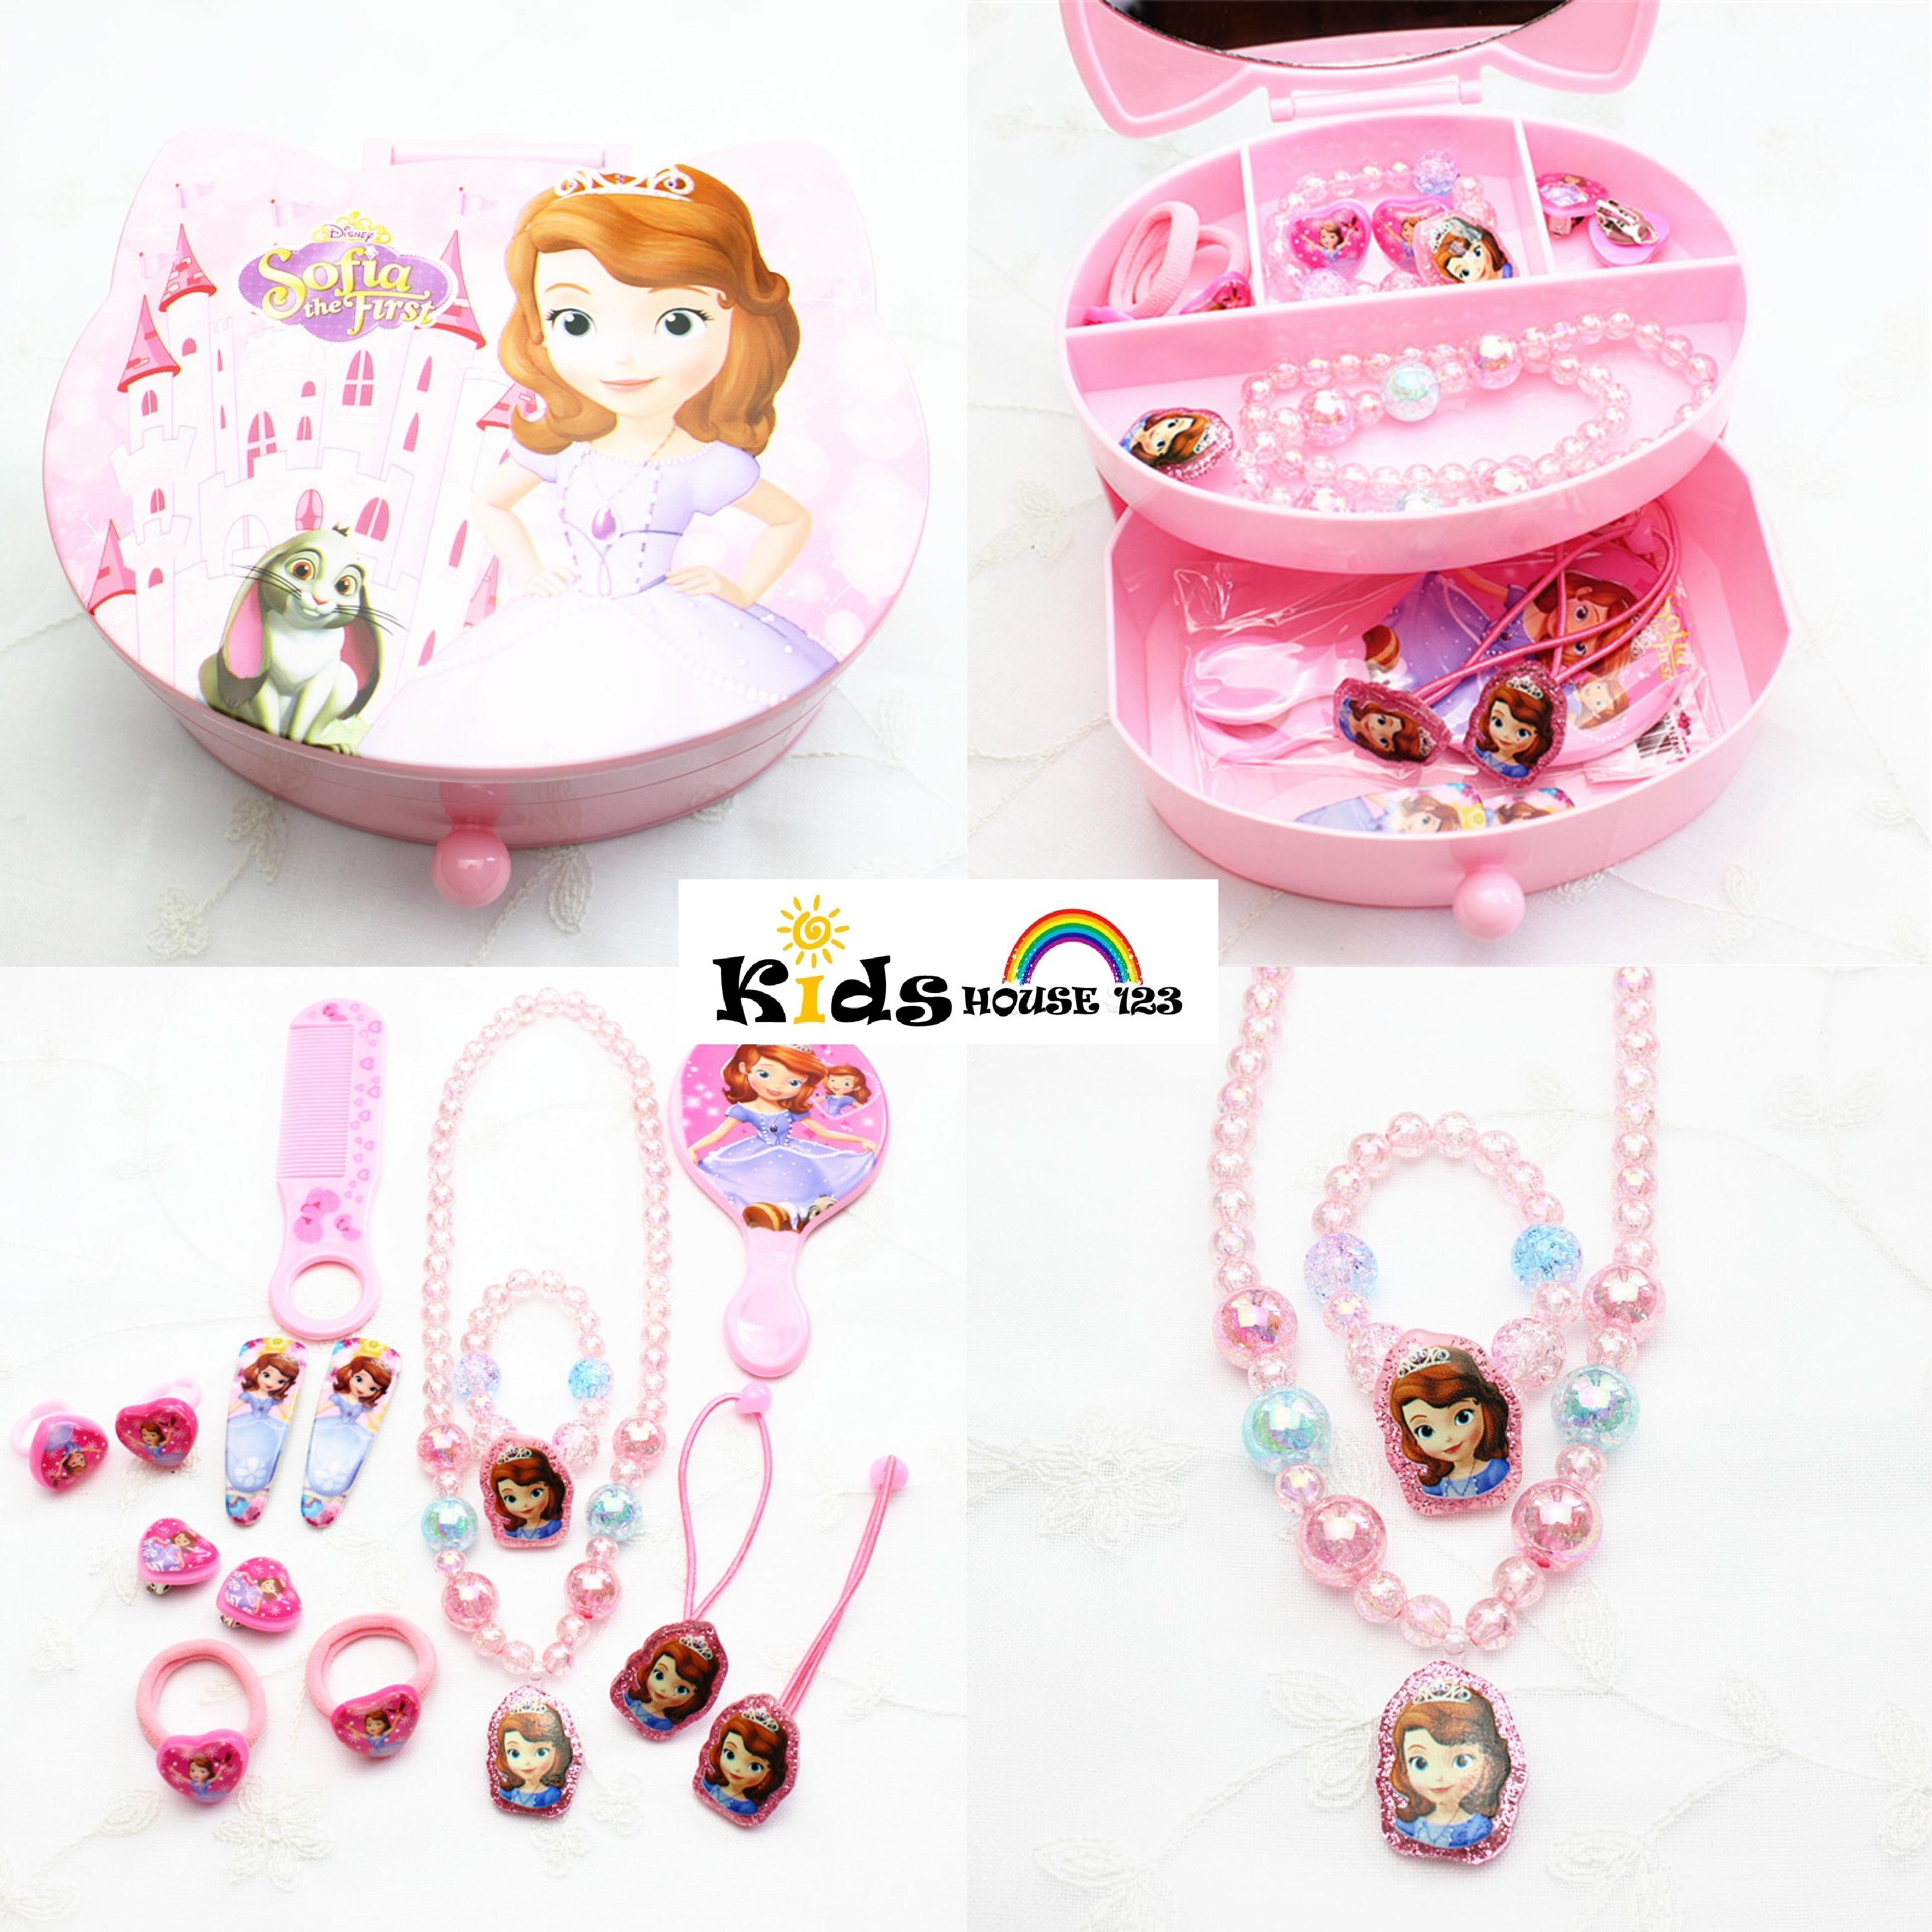 d850dcfc1 Sofia the First Jewelry / Hair Accessories Gift Set (Big) for Baby Kids  Children